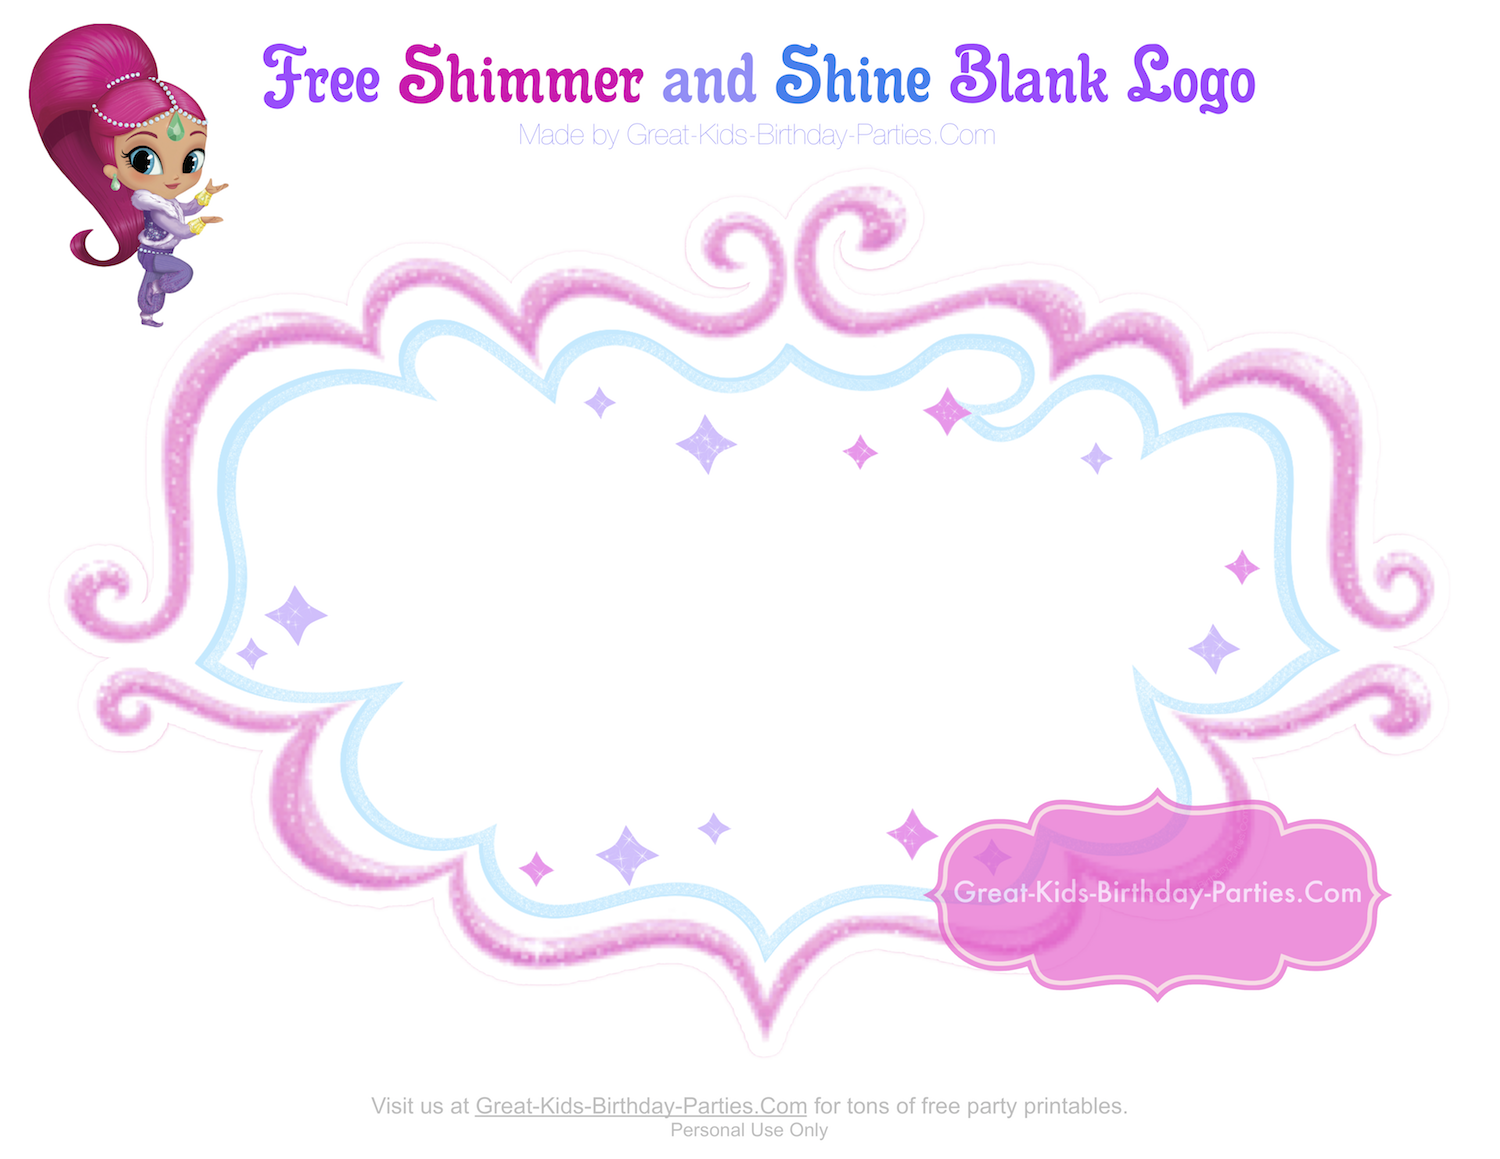 Shimmer and Shine Party in 2019.